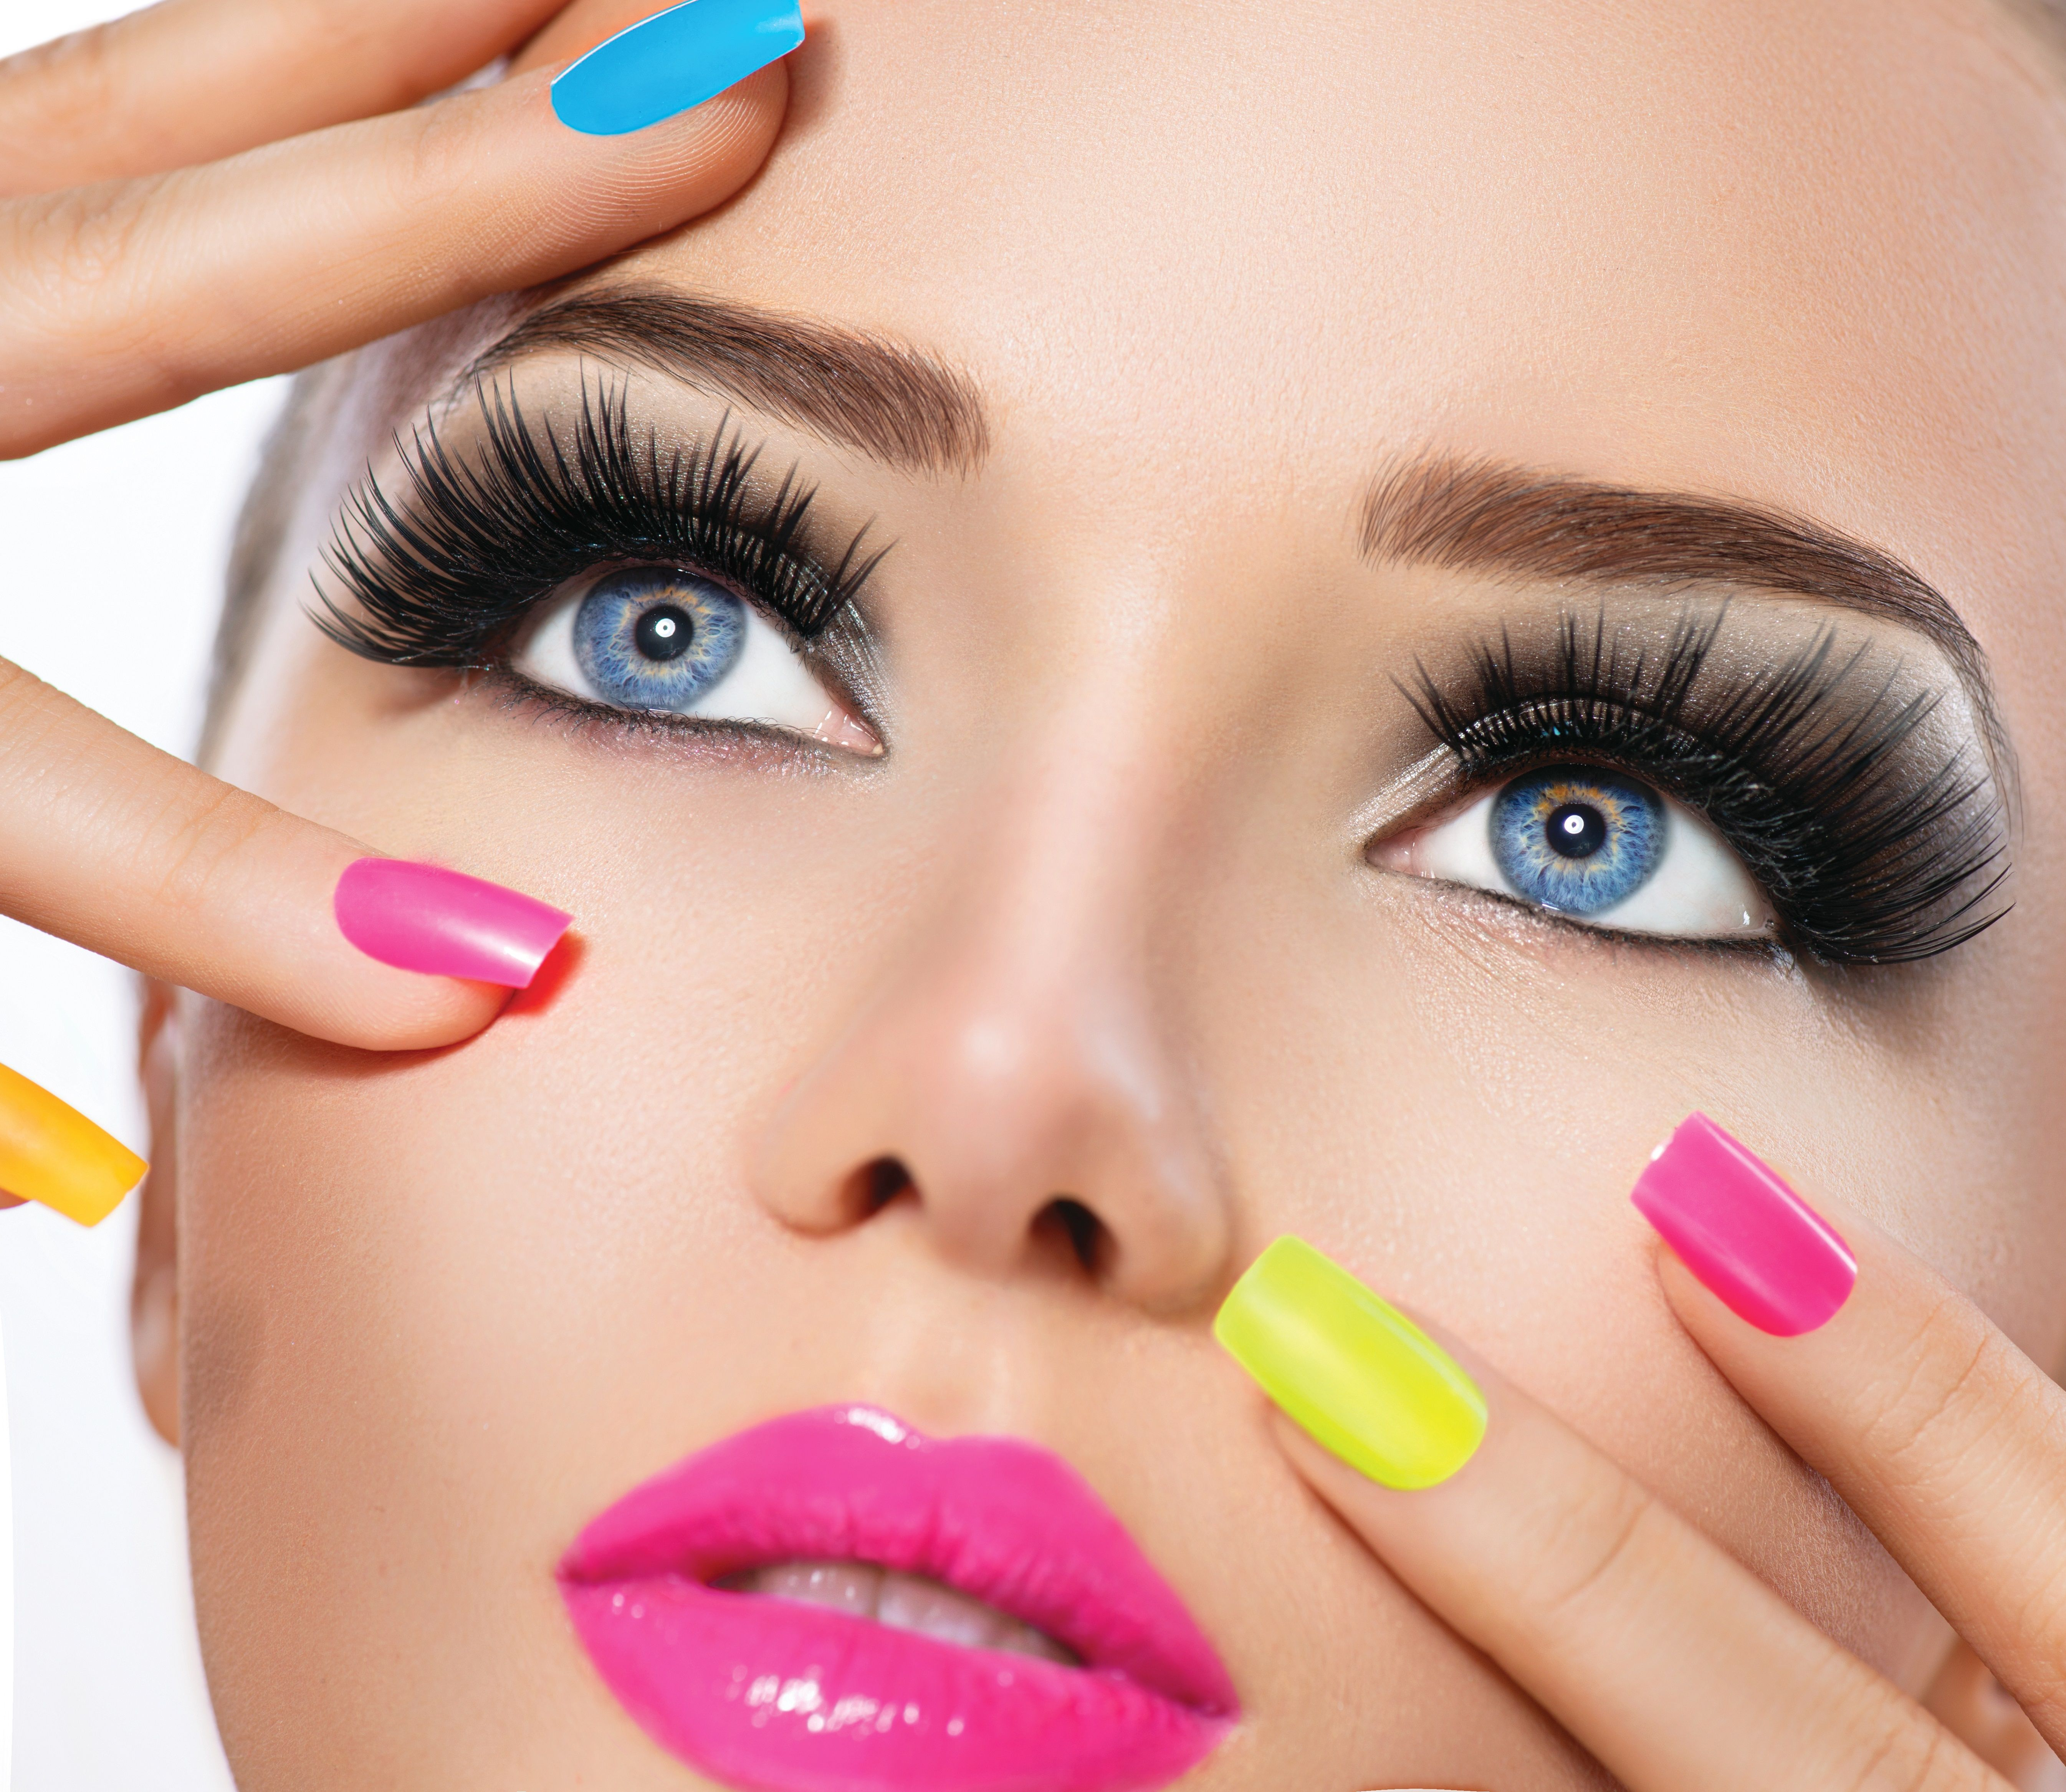 Salon Posters And Other Ideas For Your Beauty Salon Décor Photo Gallery